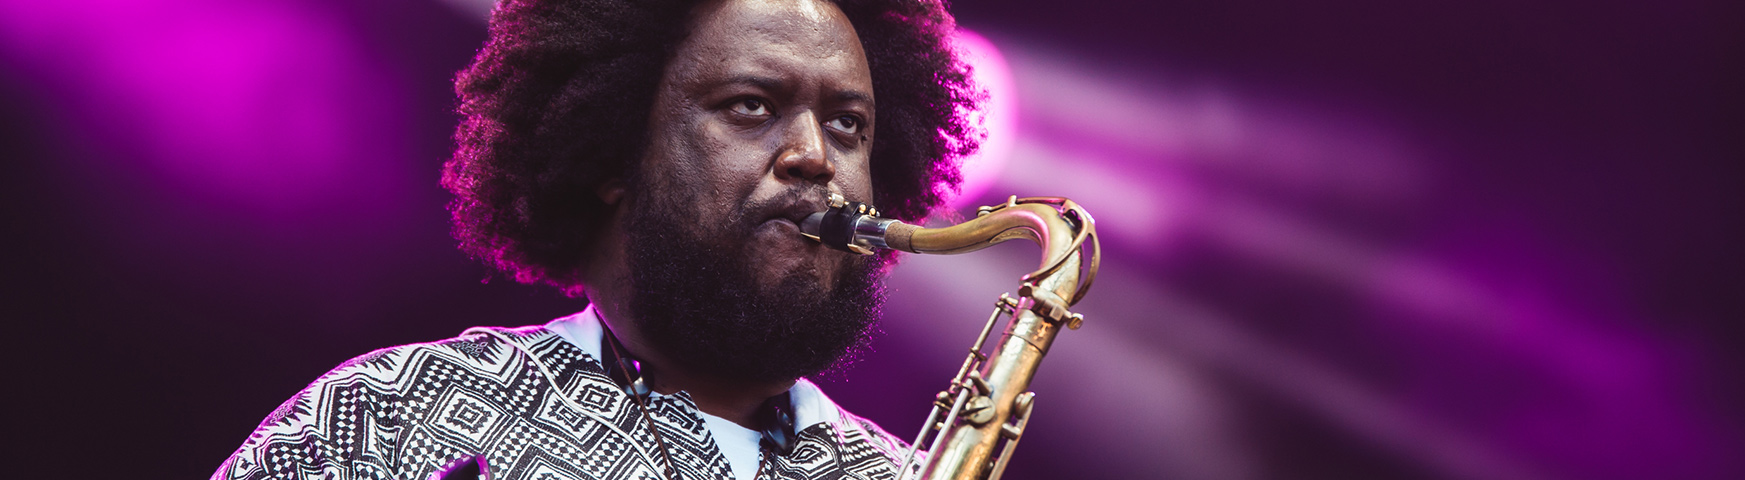 WOMADelaide Kamasi Washington